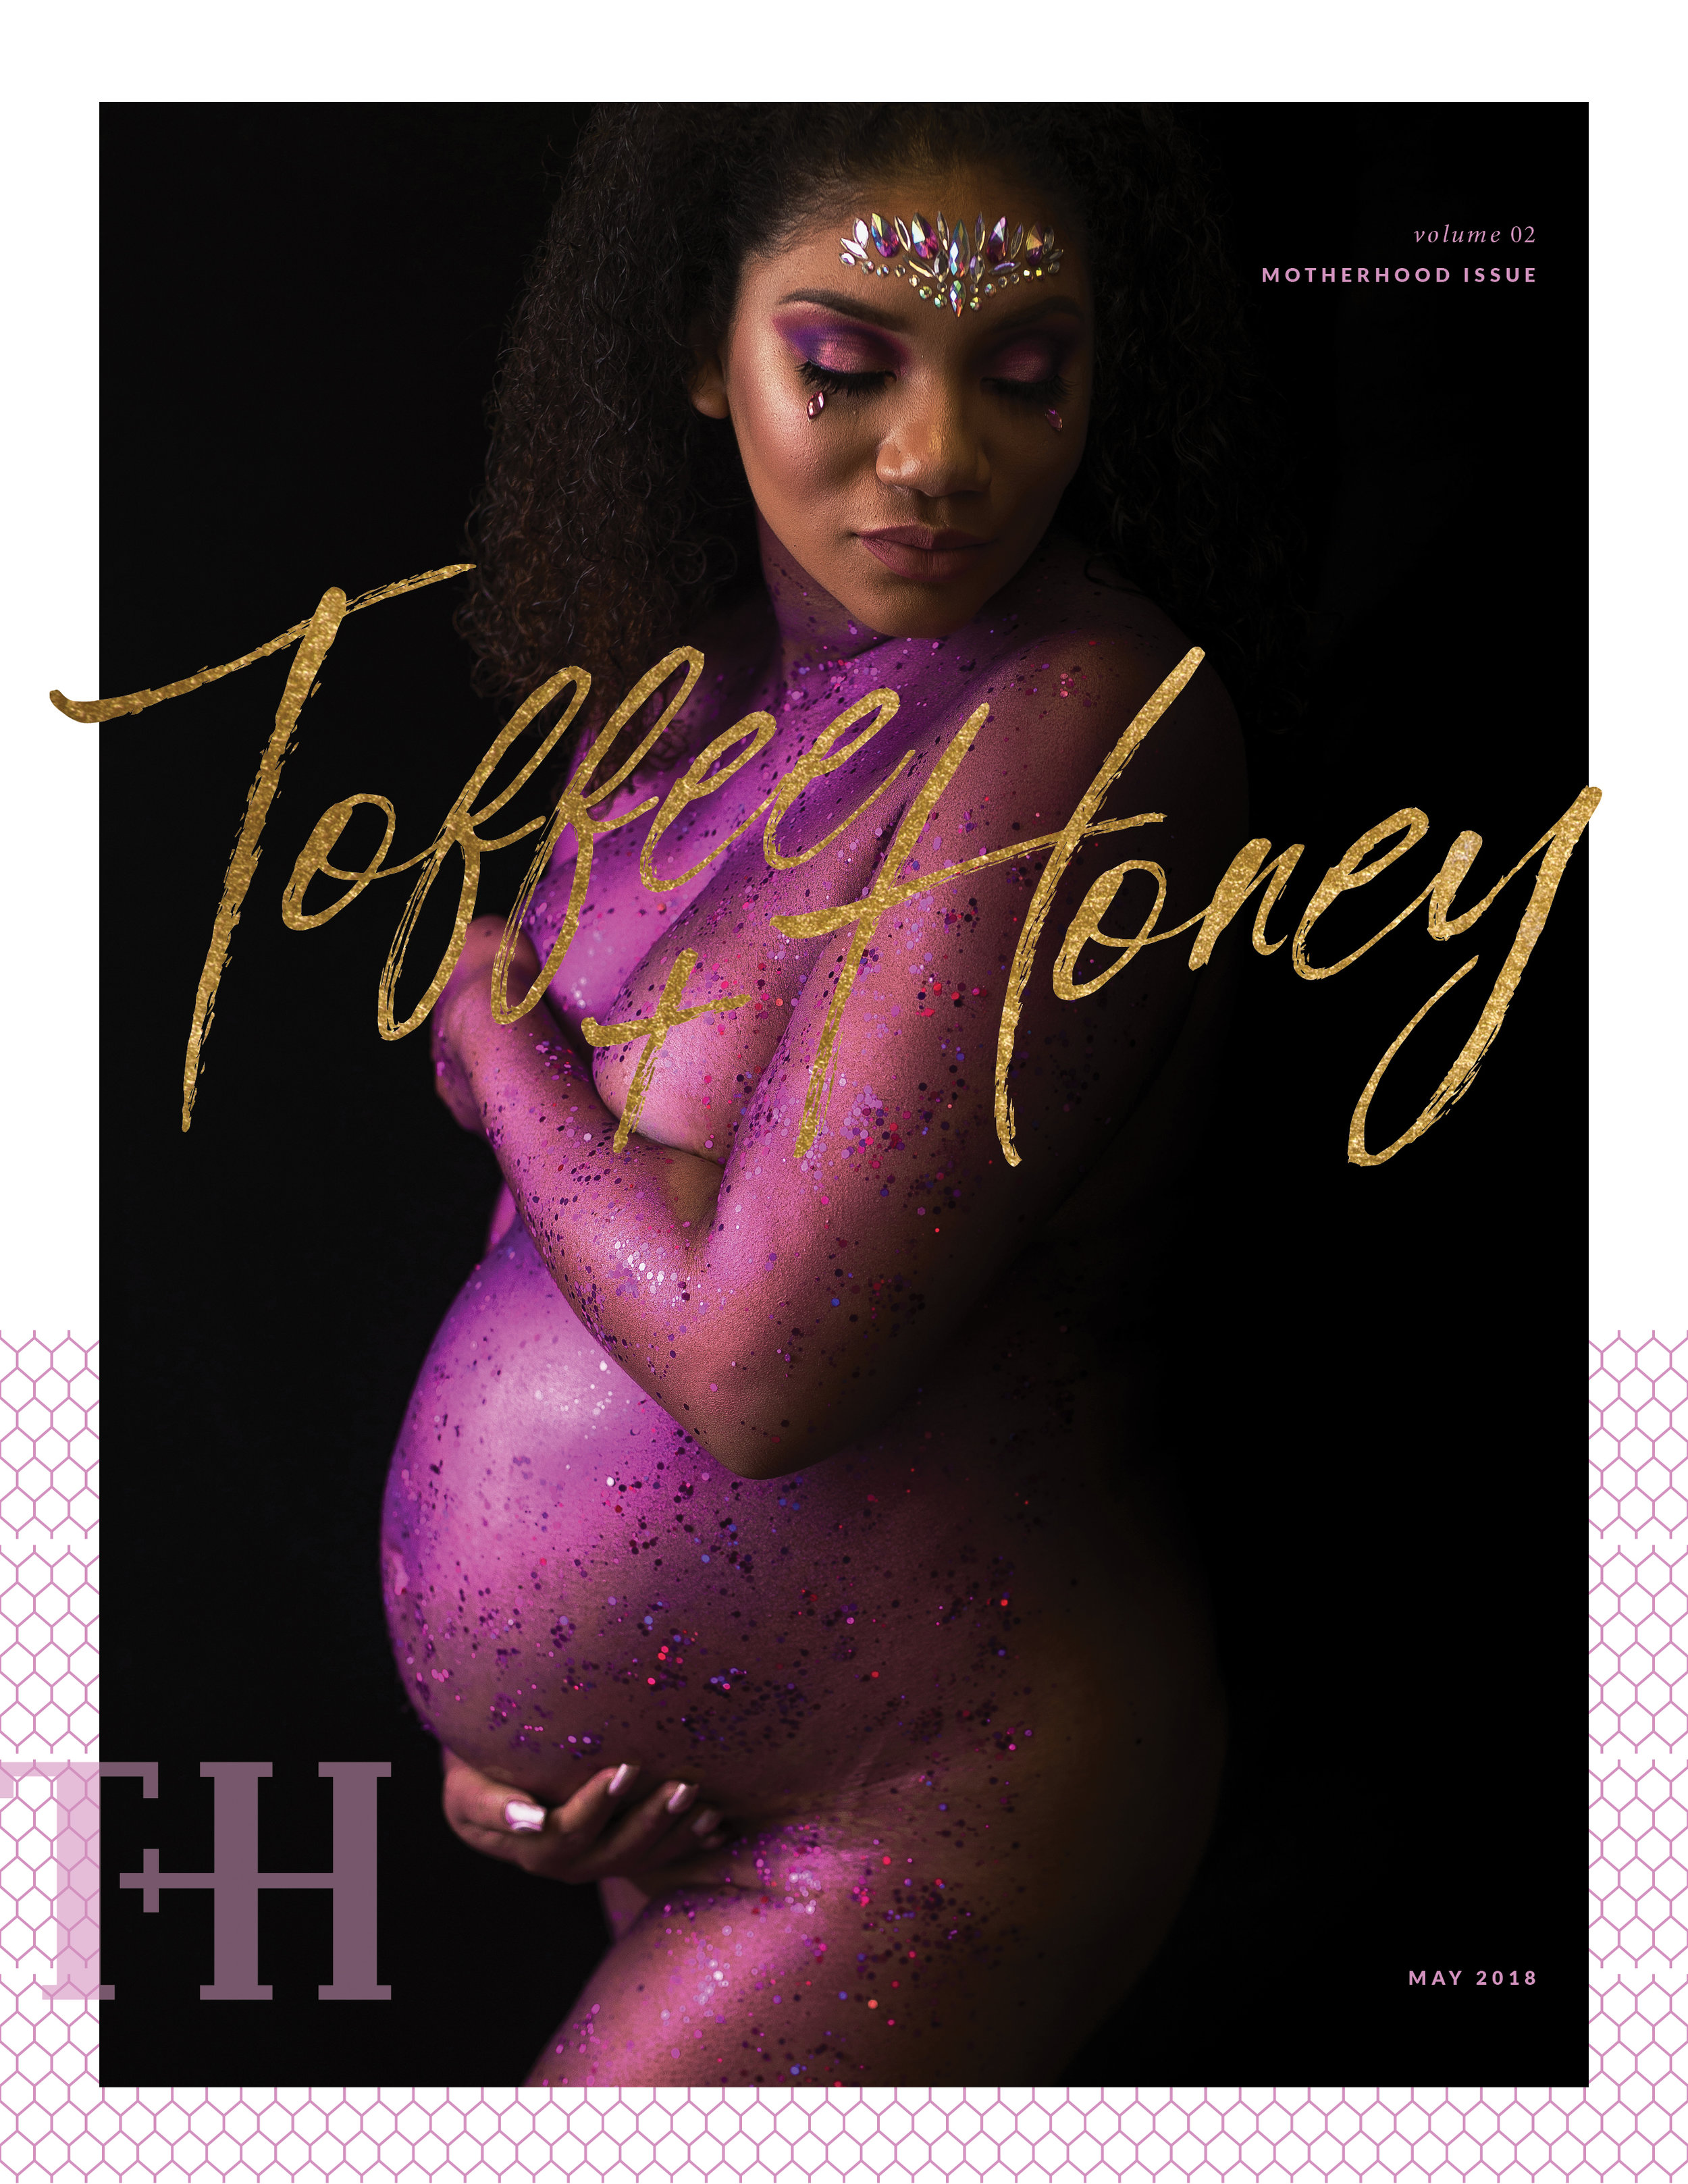 graphic designer for Toffee + Honey Magazine with Tomayia Colvin Education -